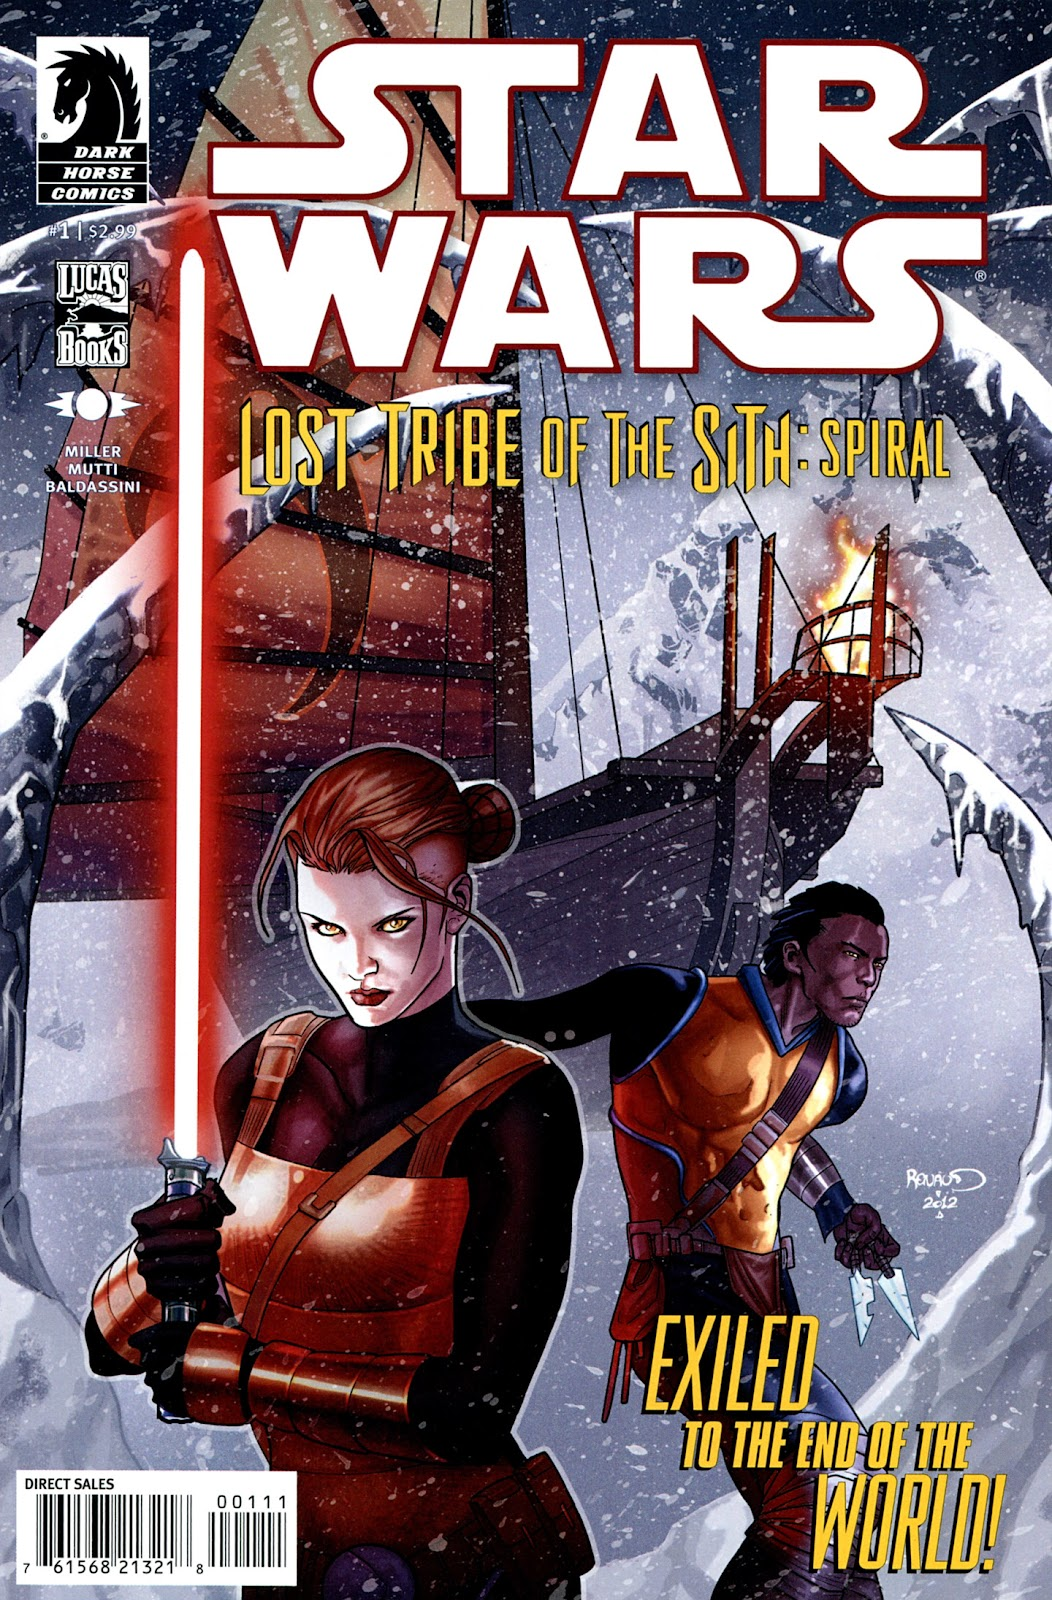 Star Wars: Lost Tribe of the Sith - Spiral 1 Page 1